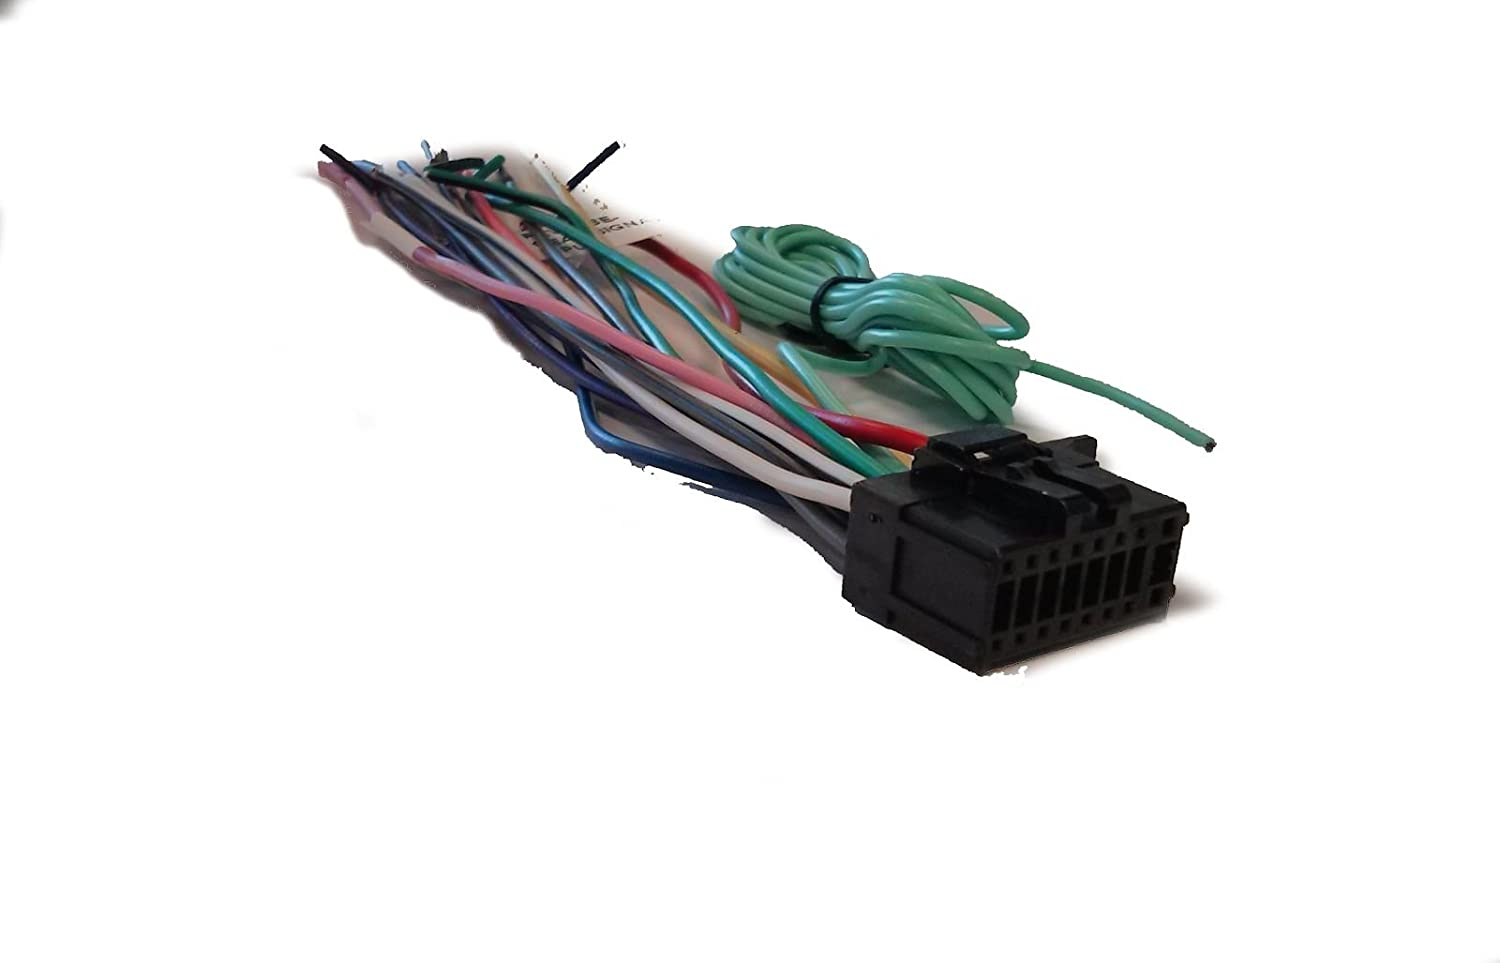 61s%2B2yUu BL._SL1500_ amazon com pioneer wire harness for sph da210 sph da100 sph da200 sph-da100 wiring harness at gsmportal.co